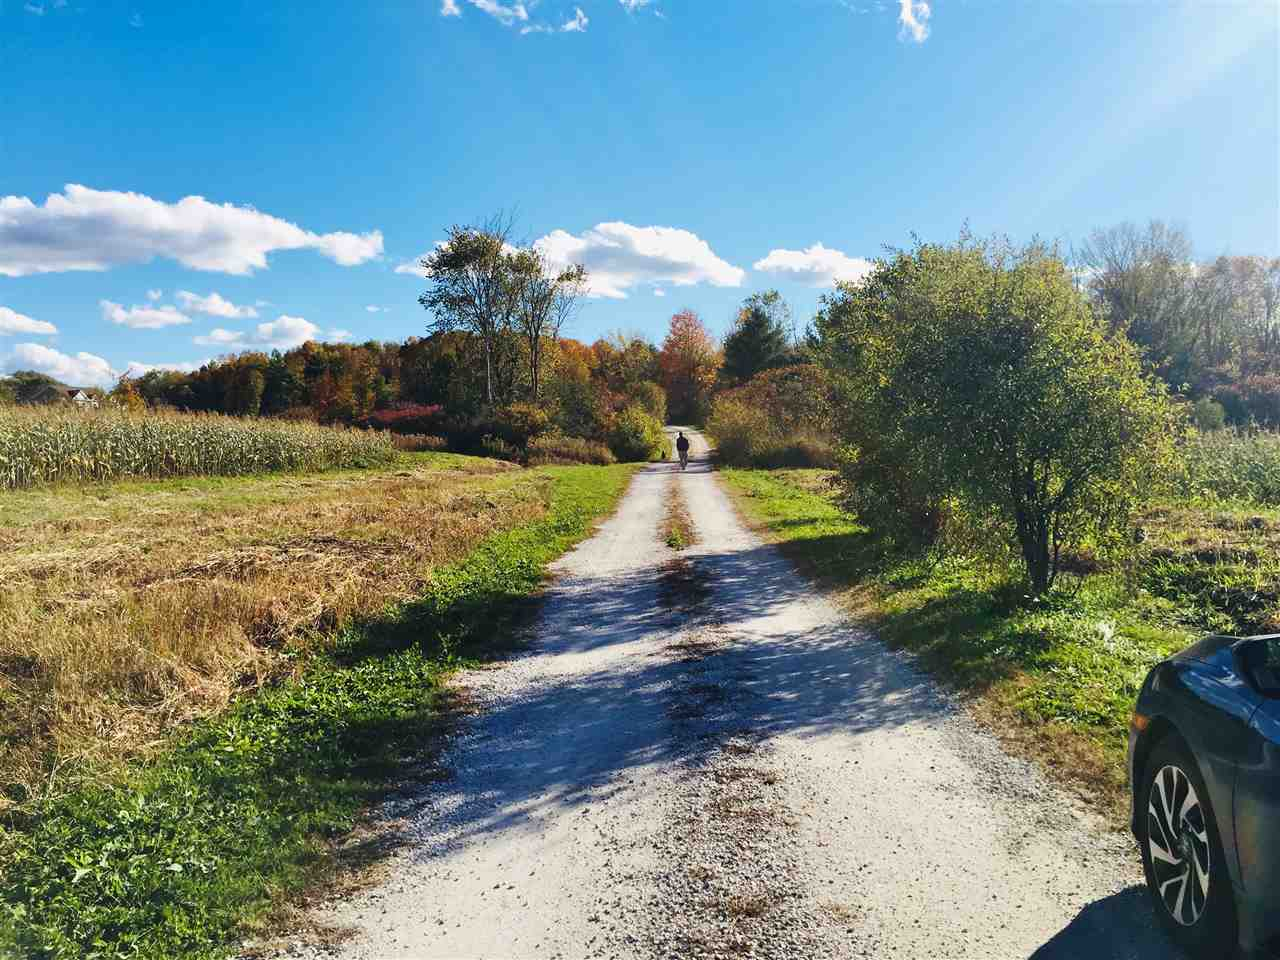 Beautiful 38.8 acre building lot in Shelburne.  Ready to build, Lot 2, part of a 2-lot private community, boasts end-of-road privacy.  Site will include a new gravel access road with underground electrical and internet service lines on site.  Land supports agriculture and horses.  State approved waste water permit (WW-4-2651-1) in place.  This open lot is close to Shelburne Pond (fishing, skating, boating), walking trails and the VAST trail.  Easy access to Rt. 116, Burlington International Airport, UVM Medical Center and CVU.  Other building lots also available.